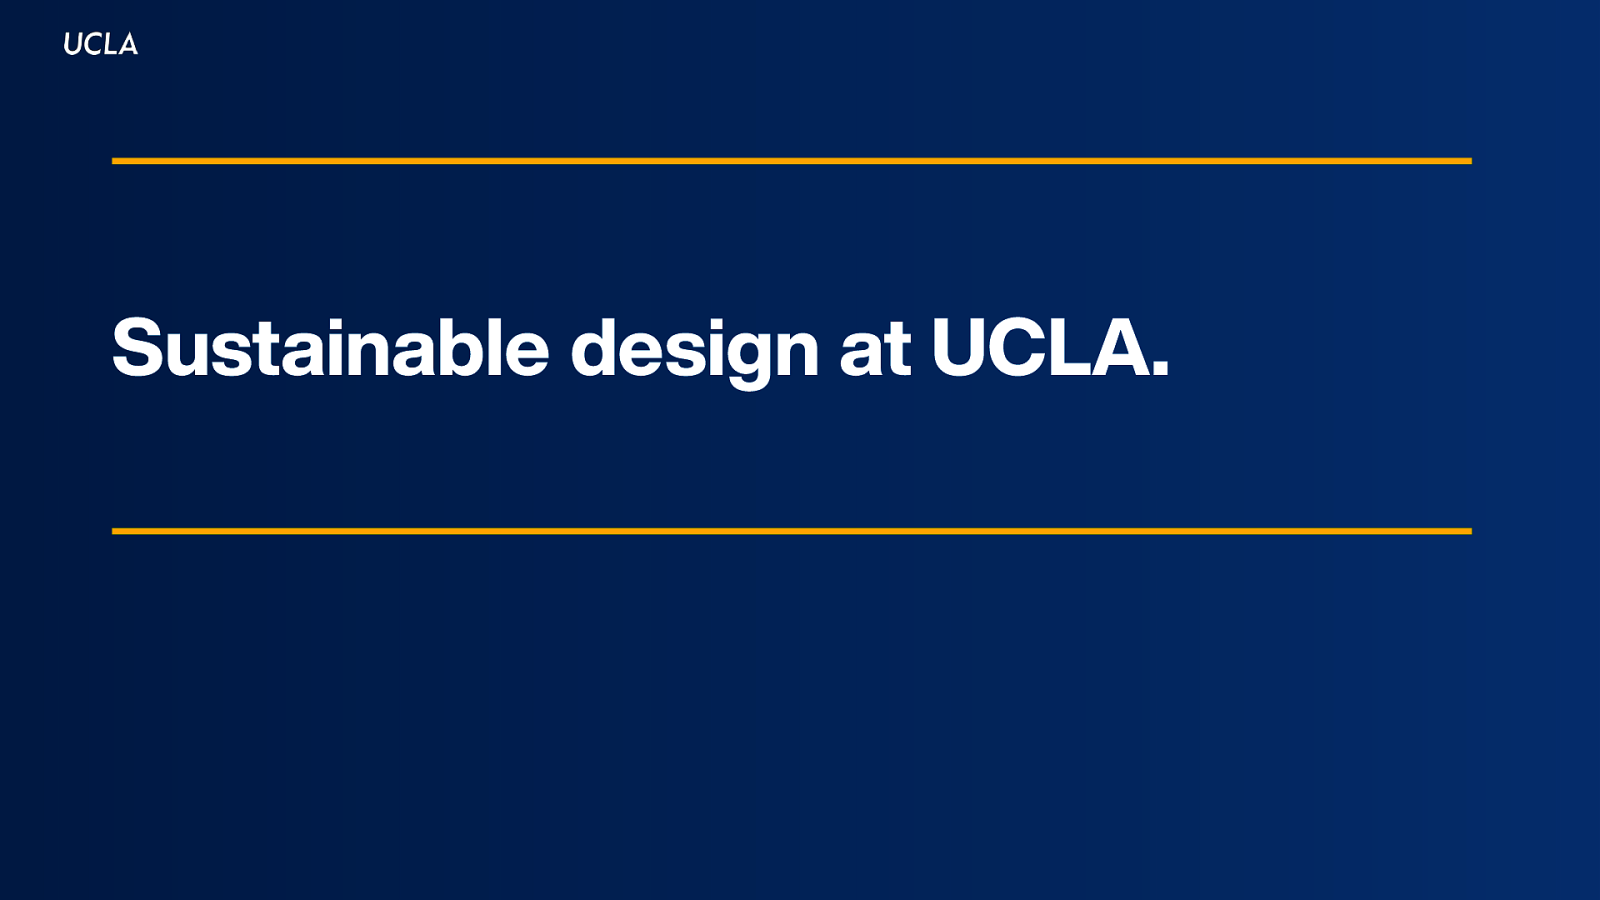 Sustainable design at UCLA